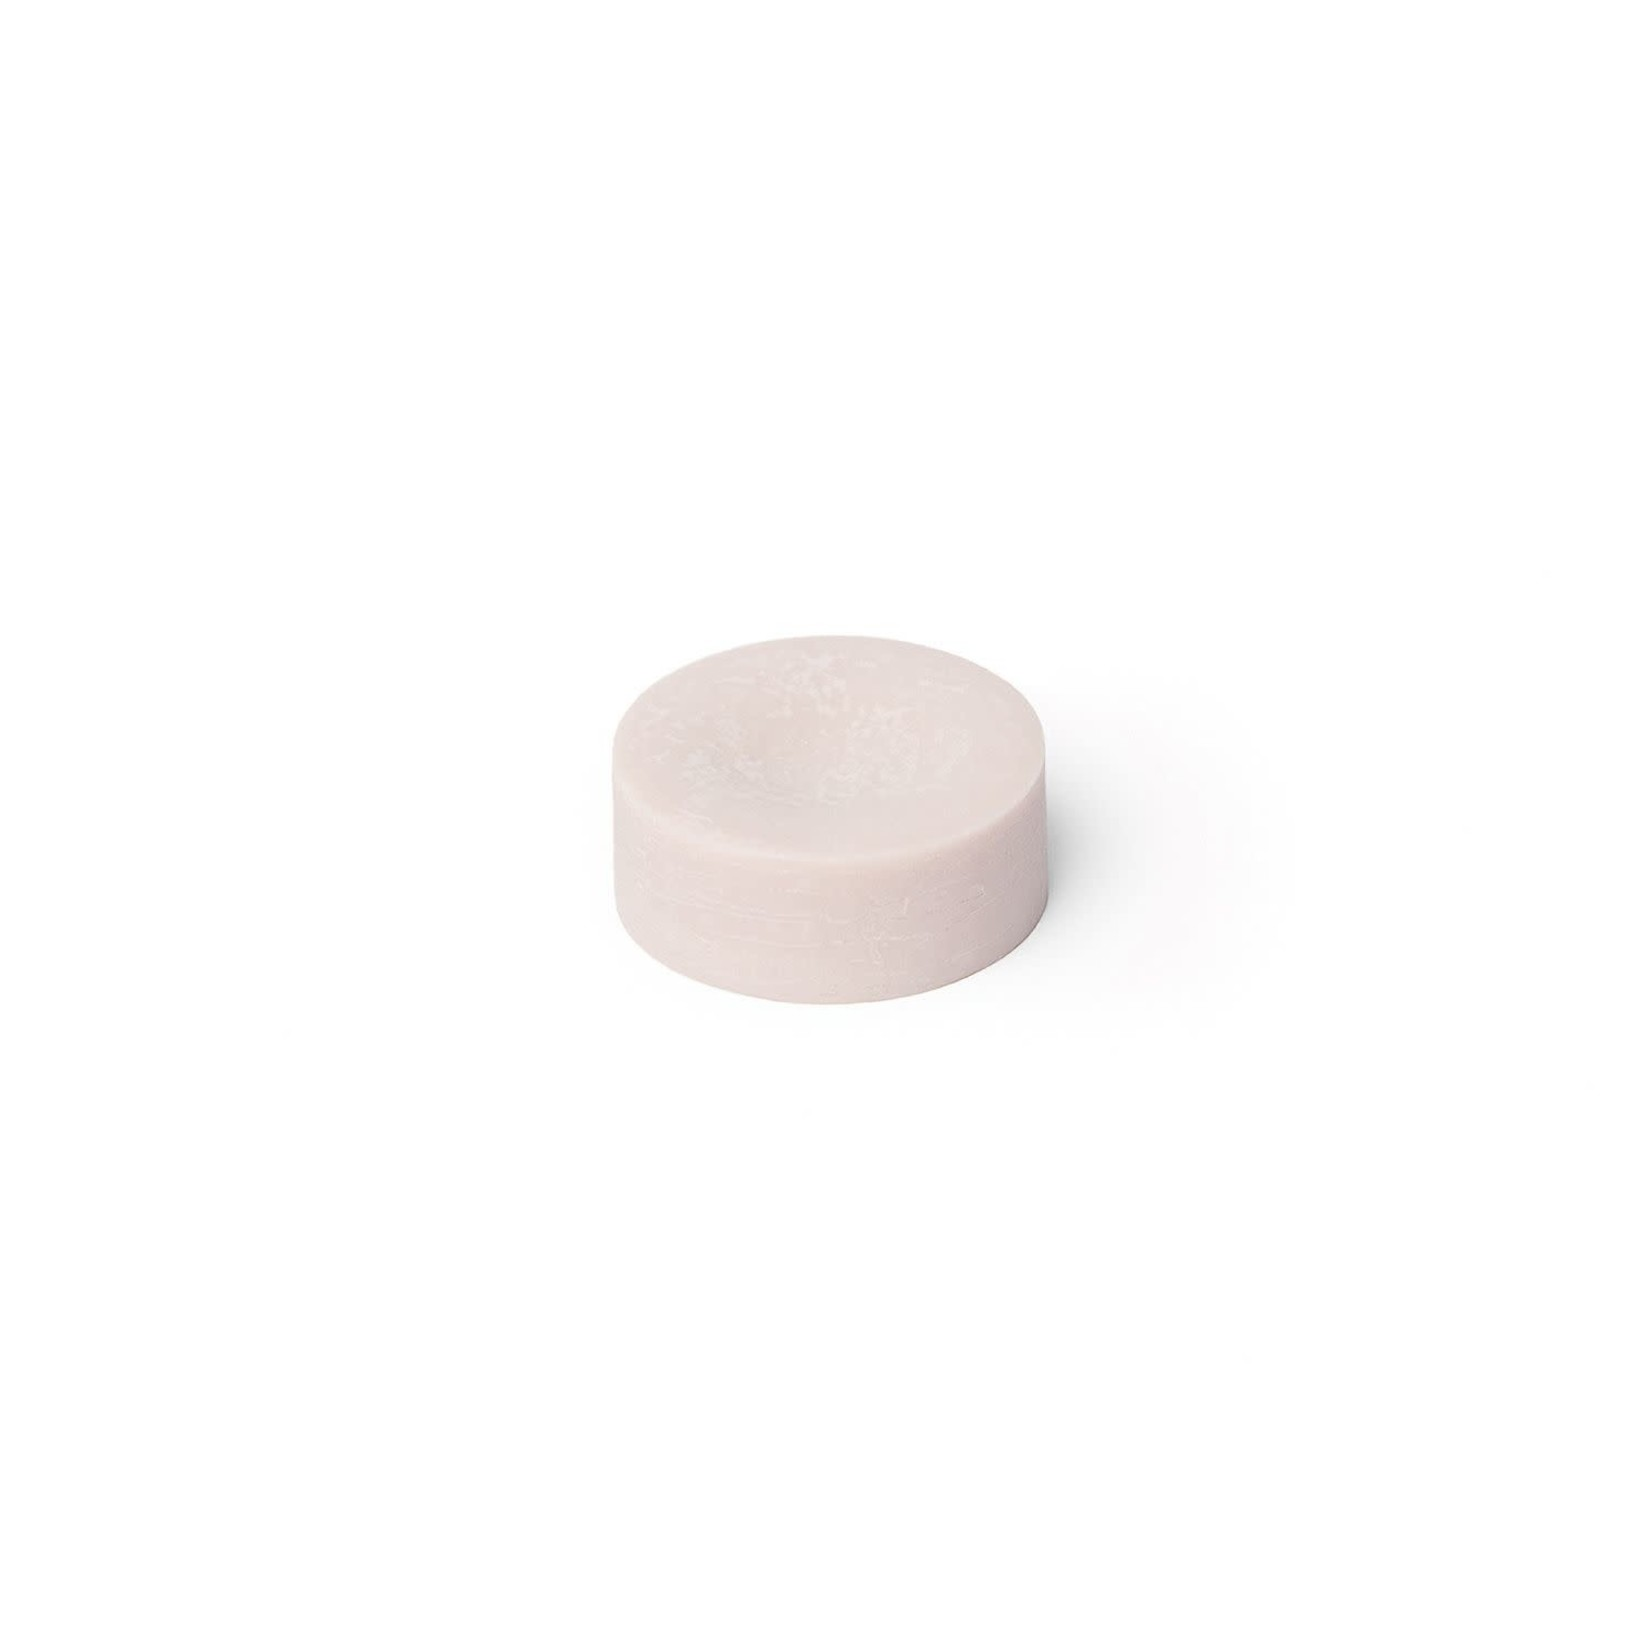 UNWRAPPED LIFE THE FIXER CONDITIONER BAR